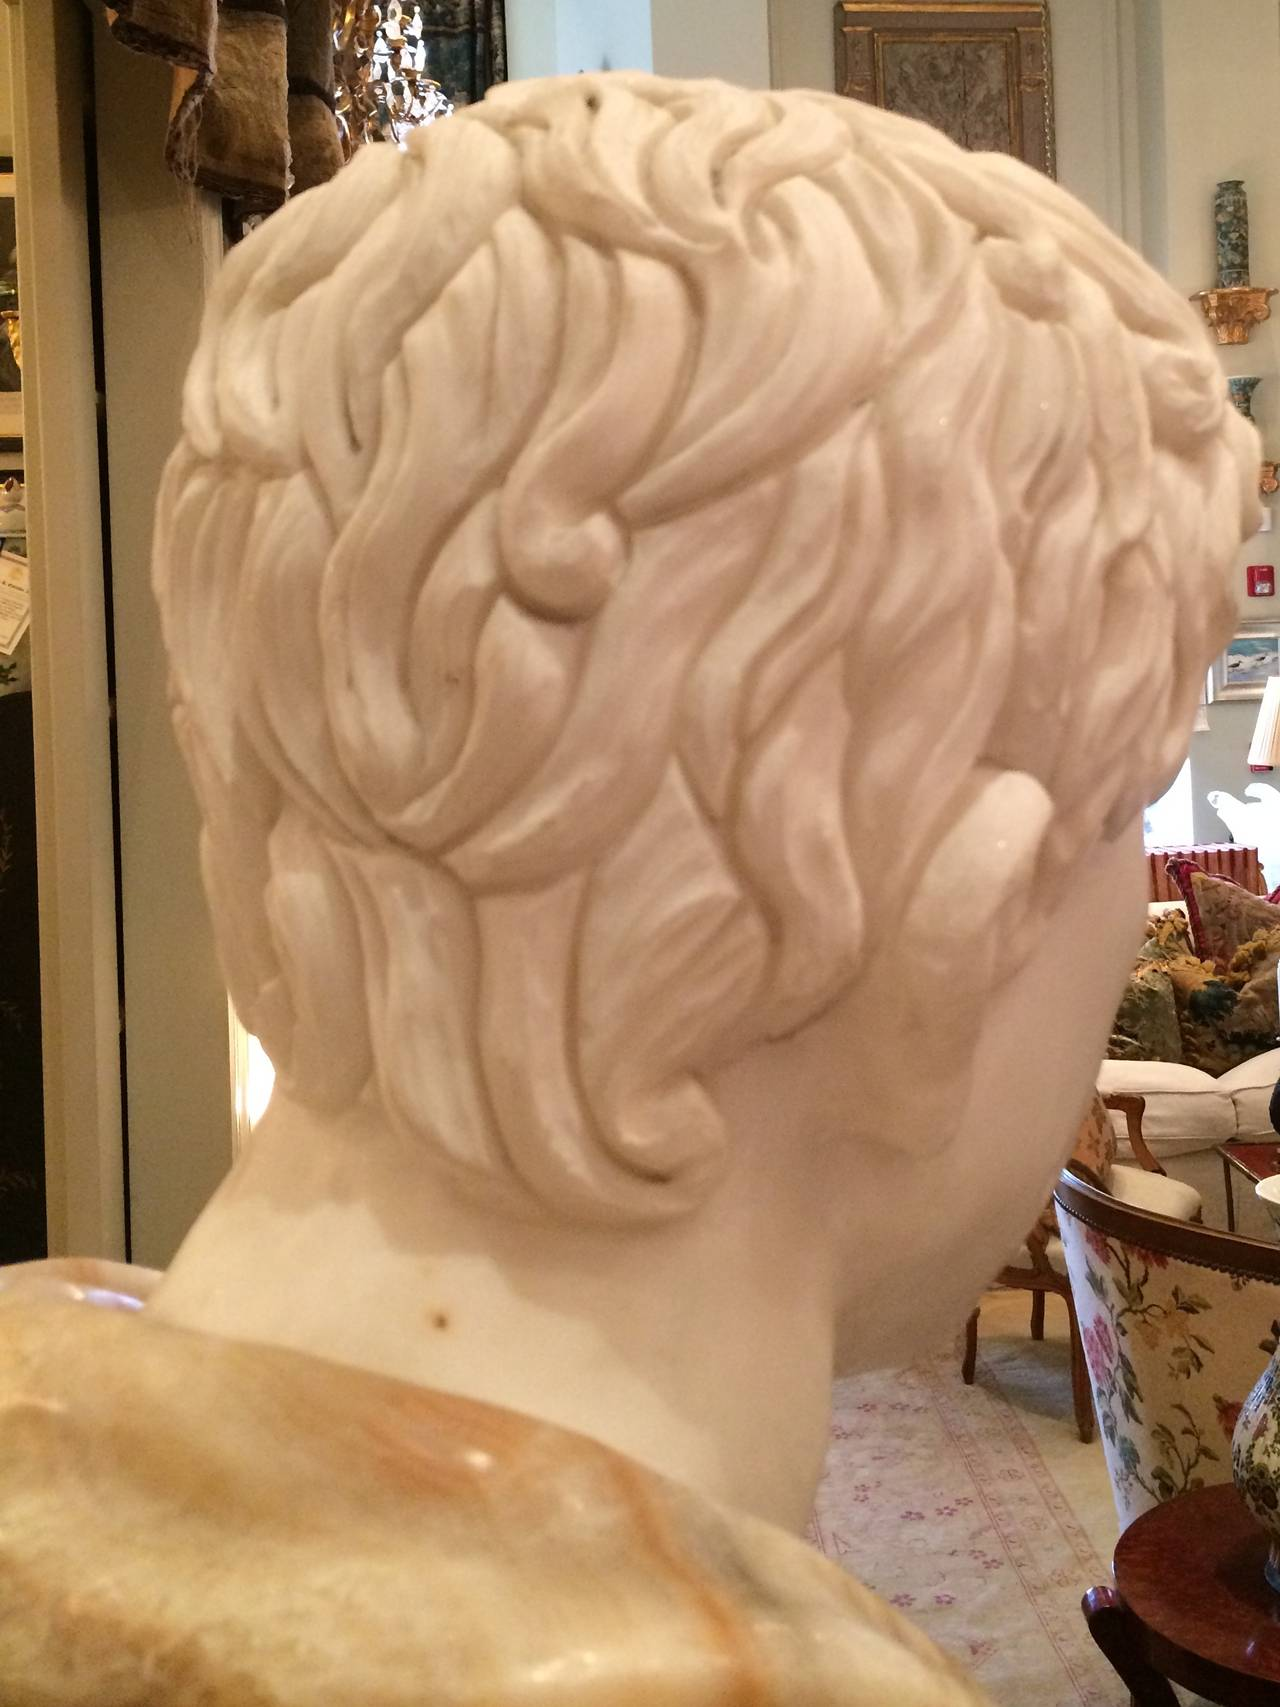 A Marble In A Cup Of Honey : Bust of carrera marble and honey onyx for sale at stdibs